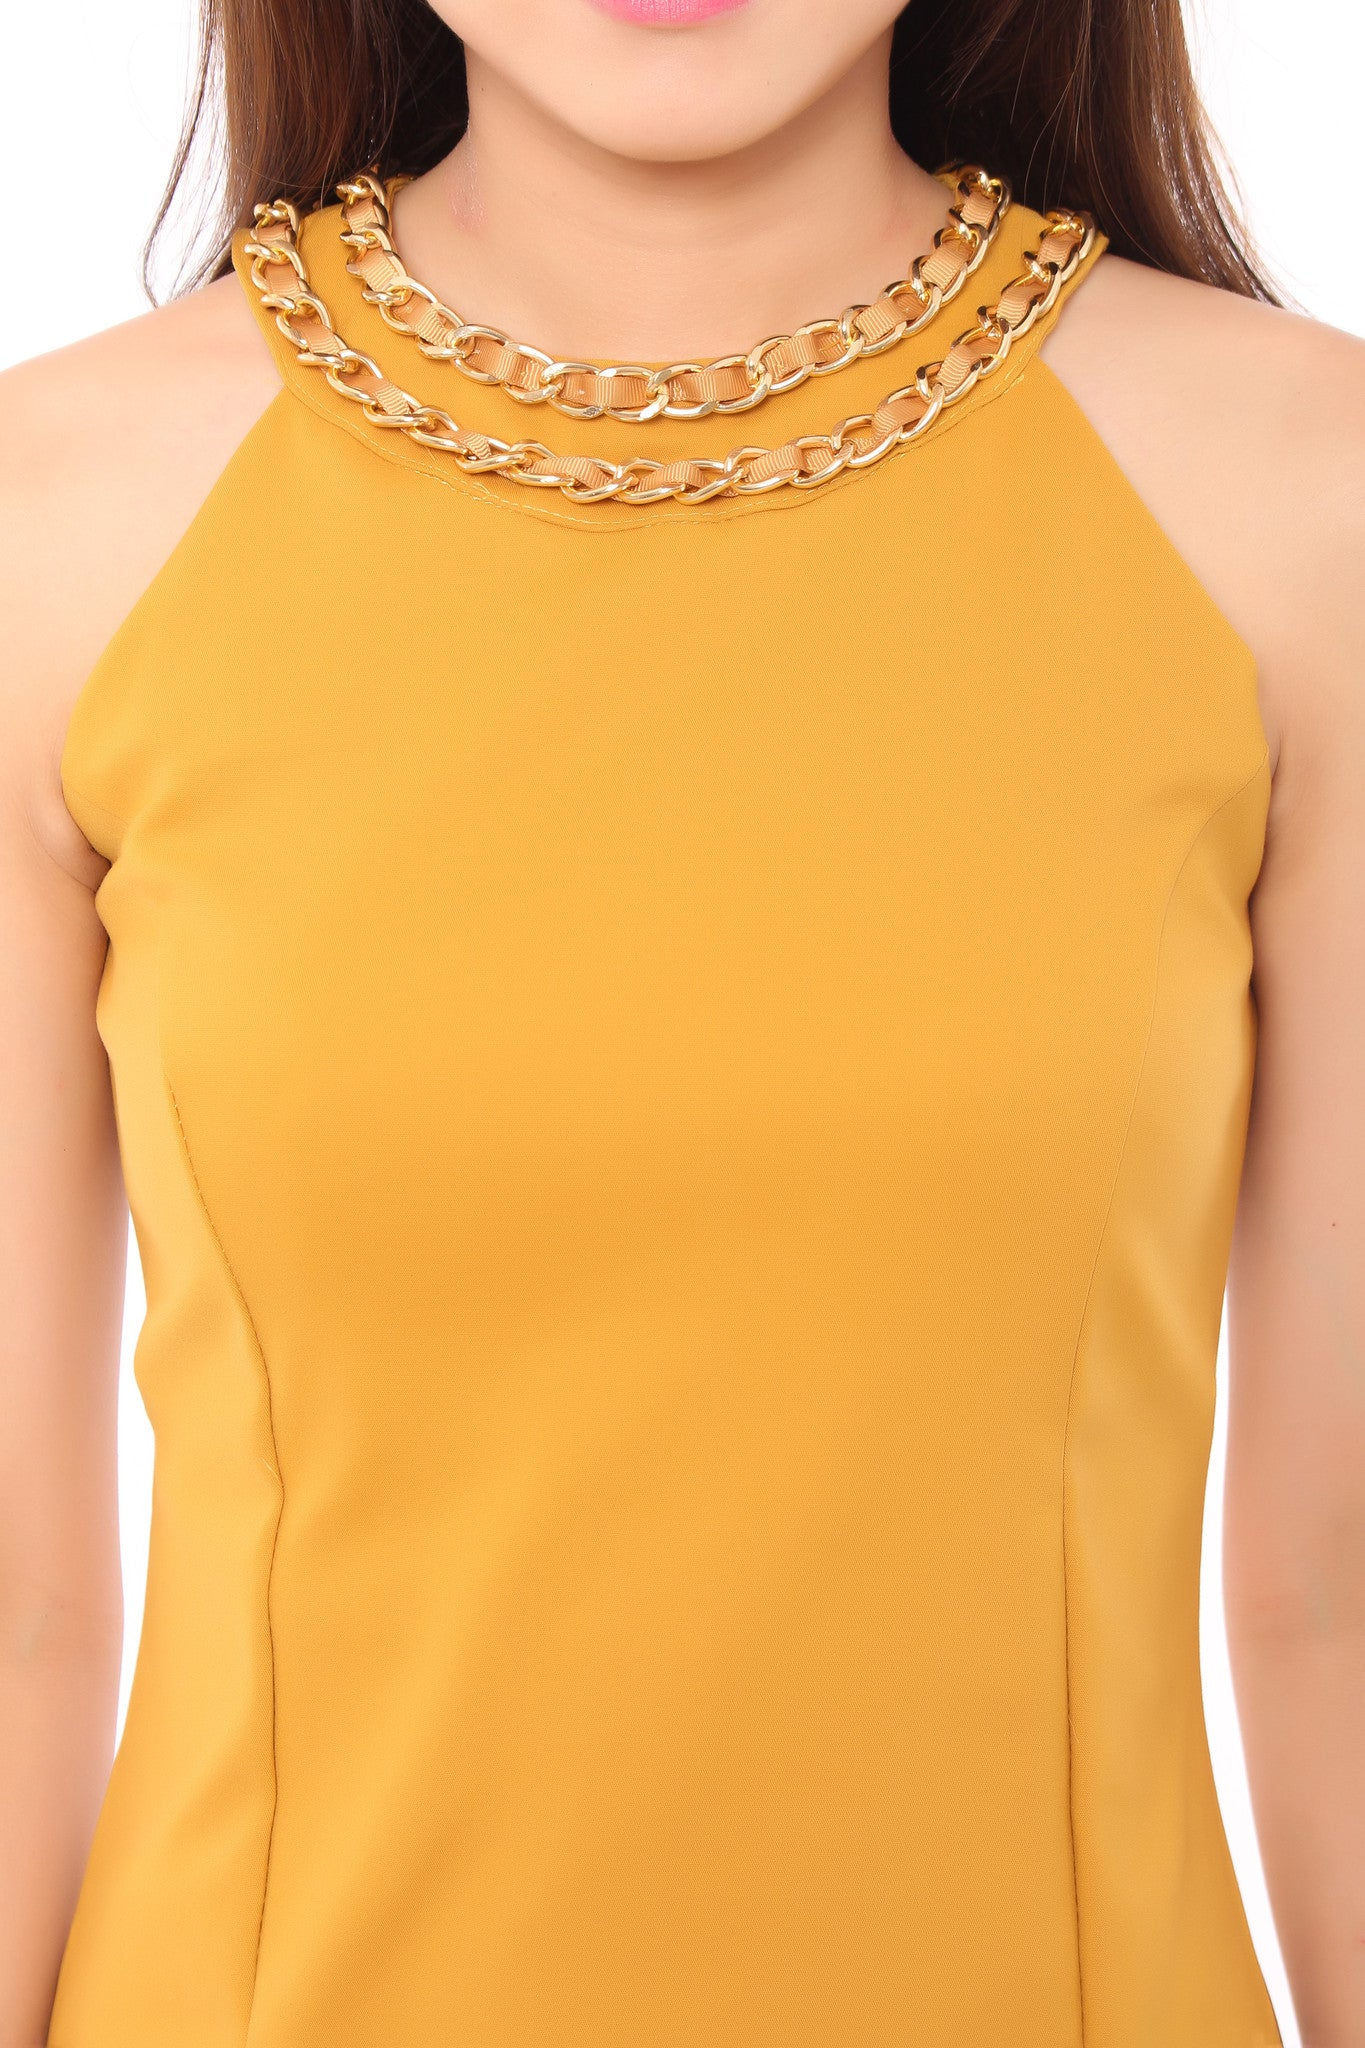 LUNAR CHAINED DRESS IN mustard